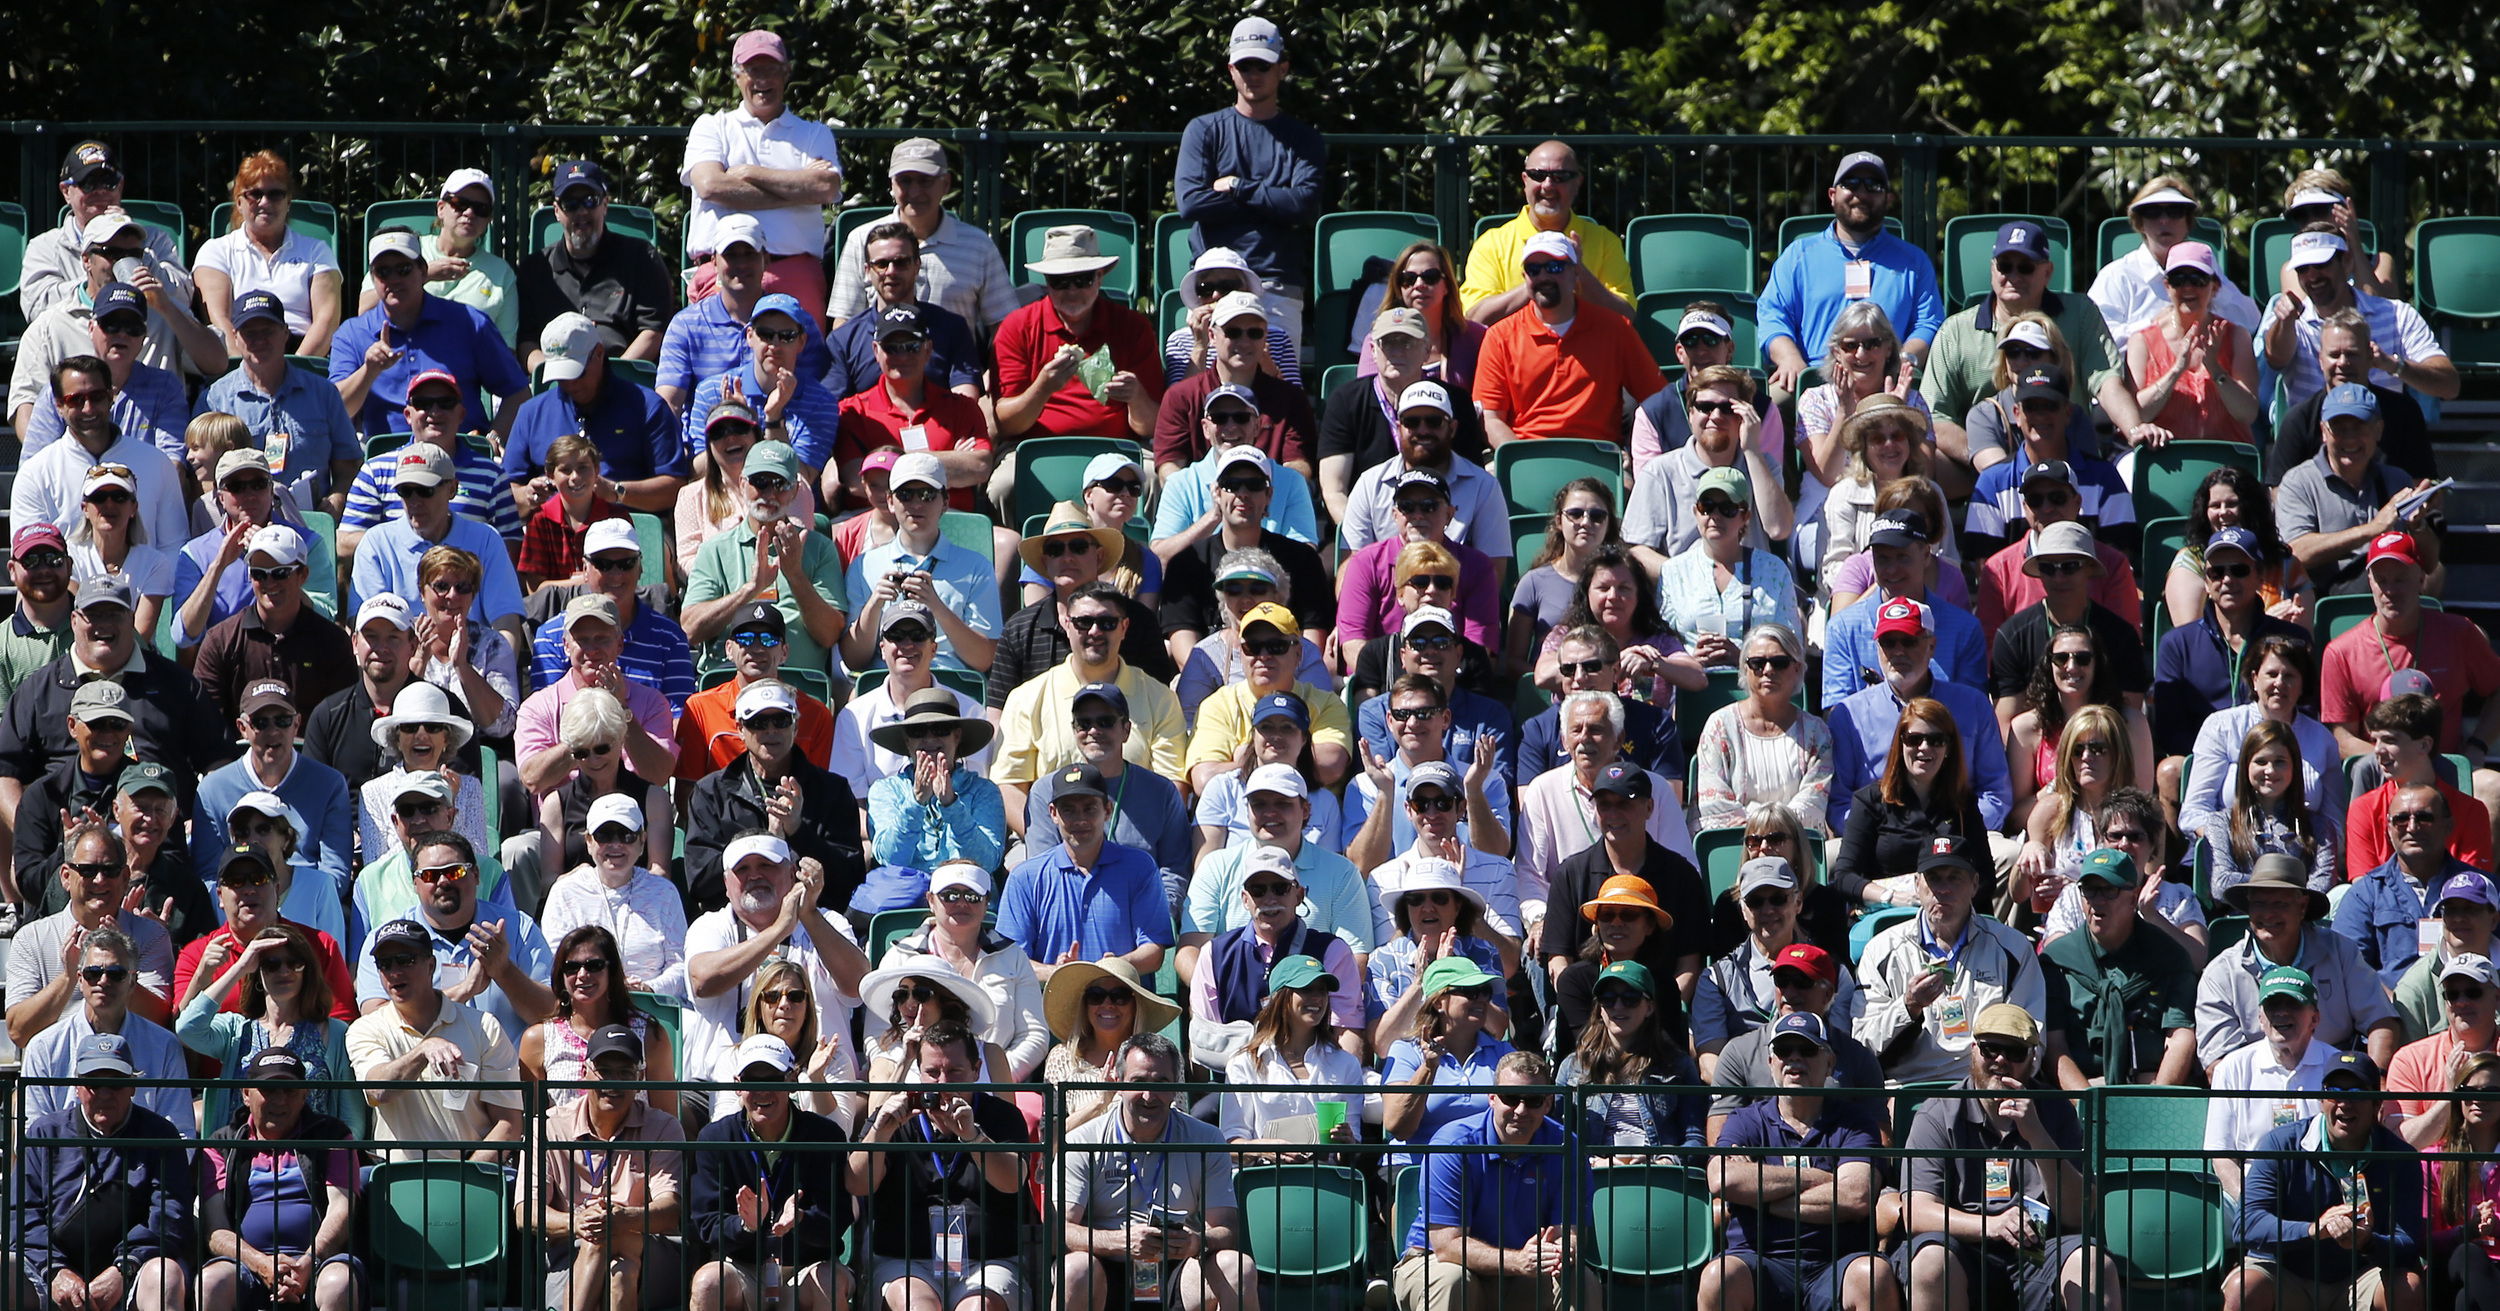 Golf numbers show game on rise